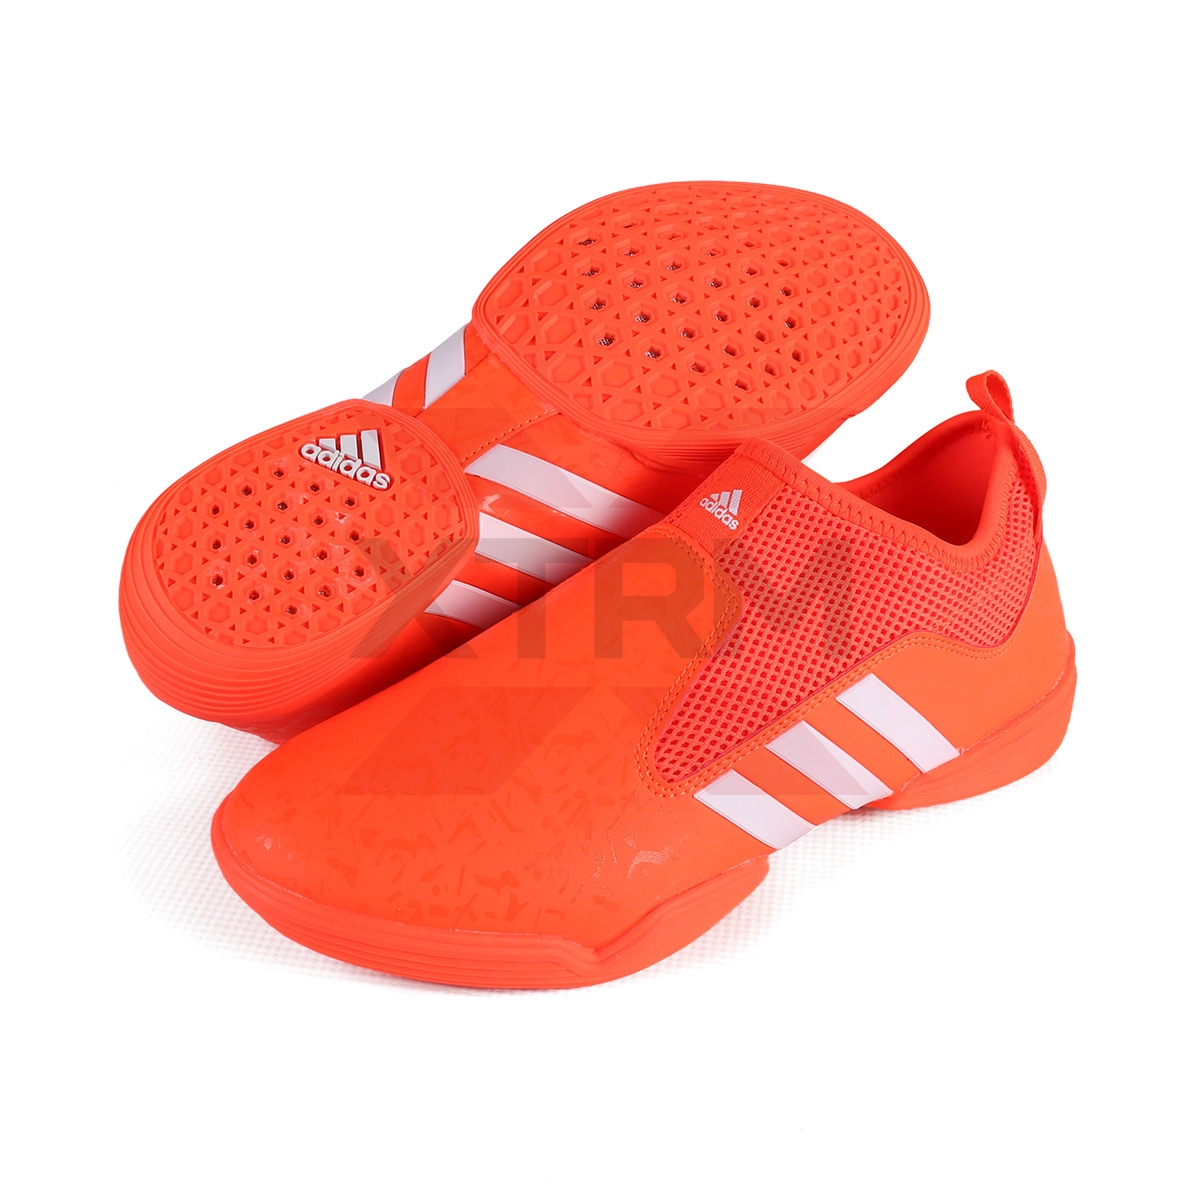 ee291c4a72d ADIDAS ADI CONTESTANT RED SHOES